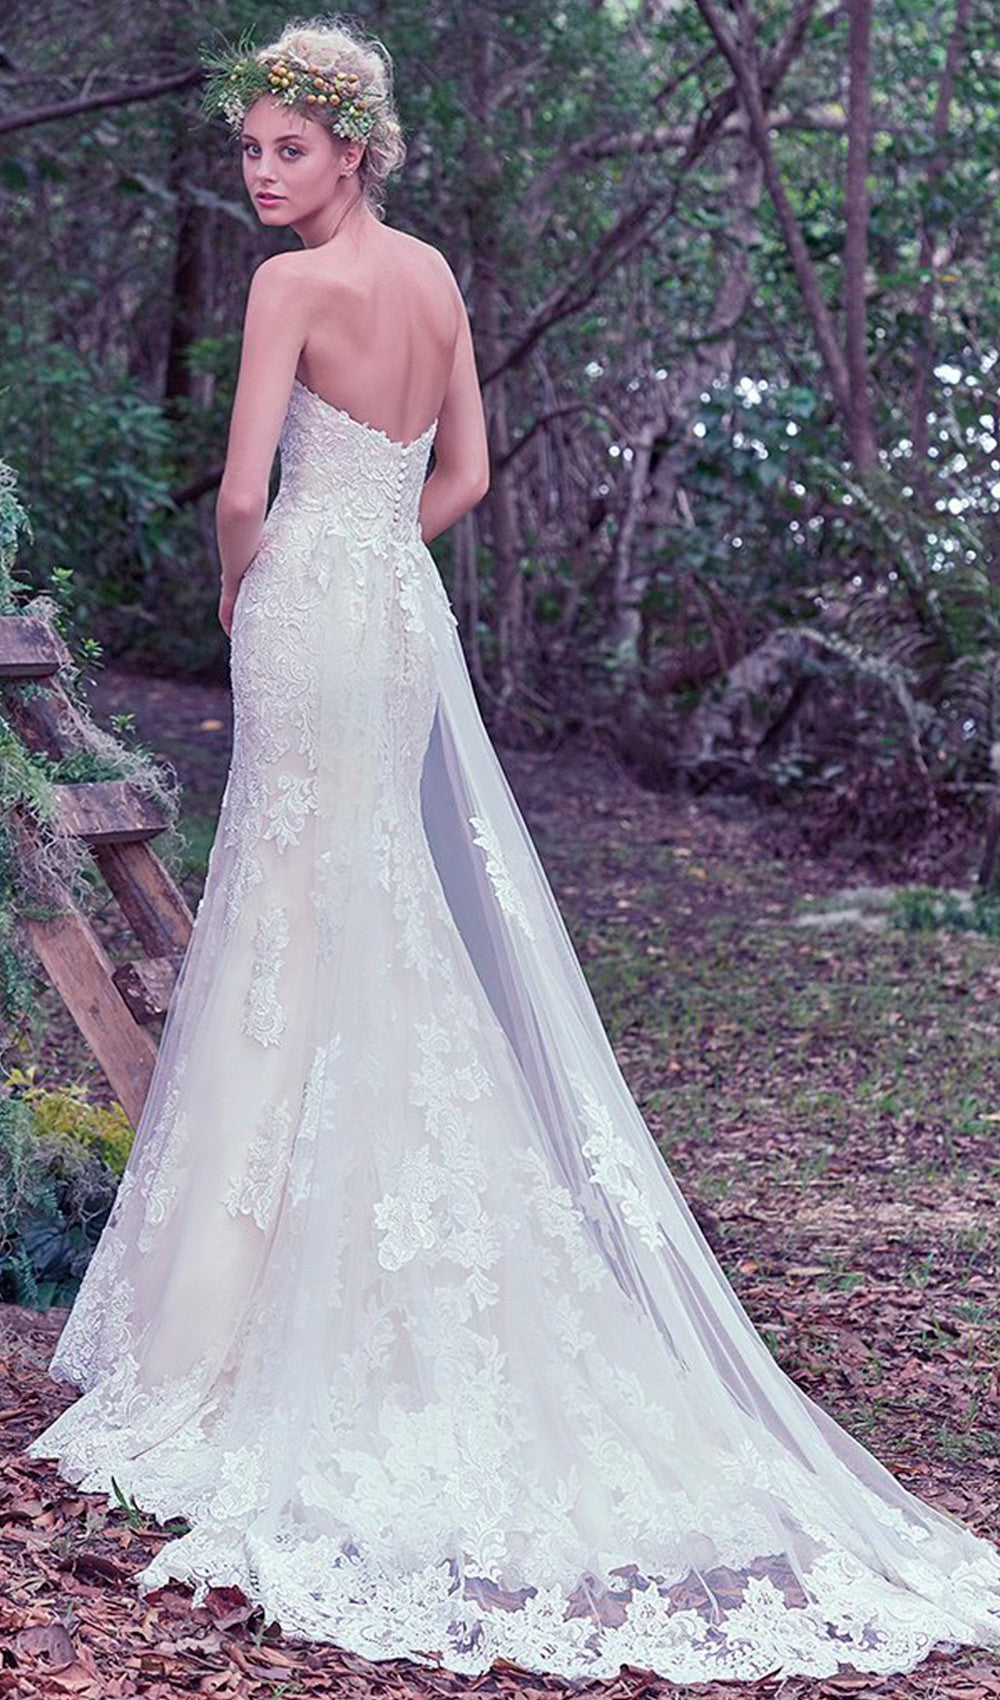 Excelente Maggie Sottero Wedding Dress Sale Foto - Vestido de Novia ...